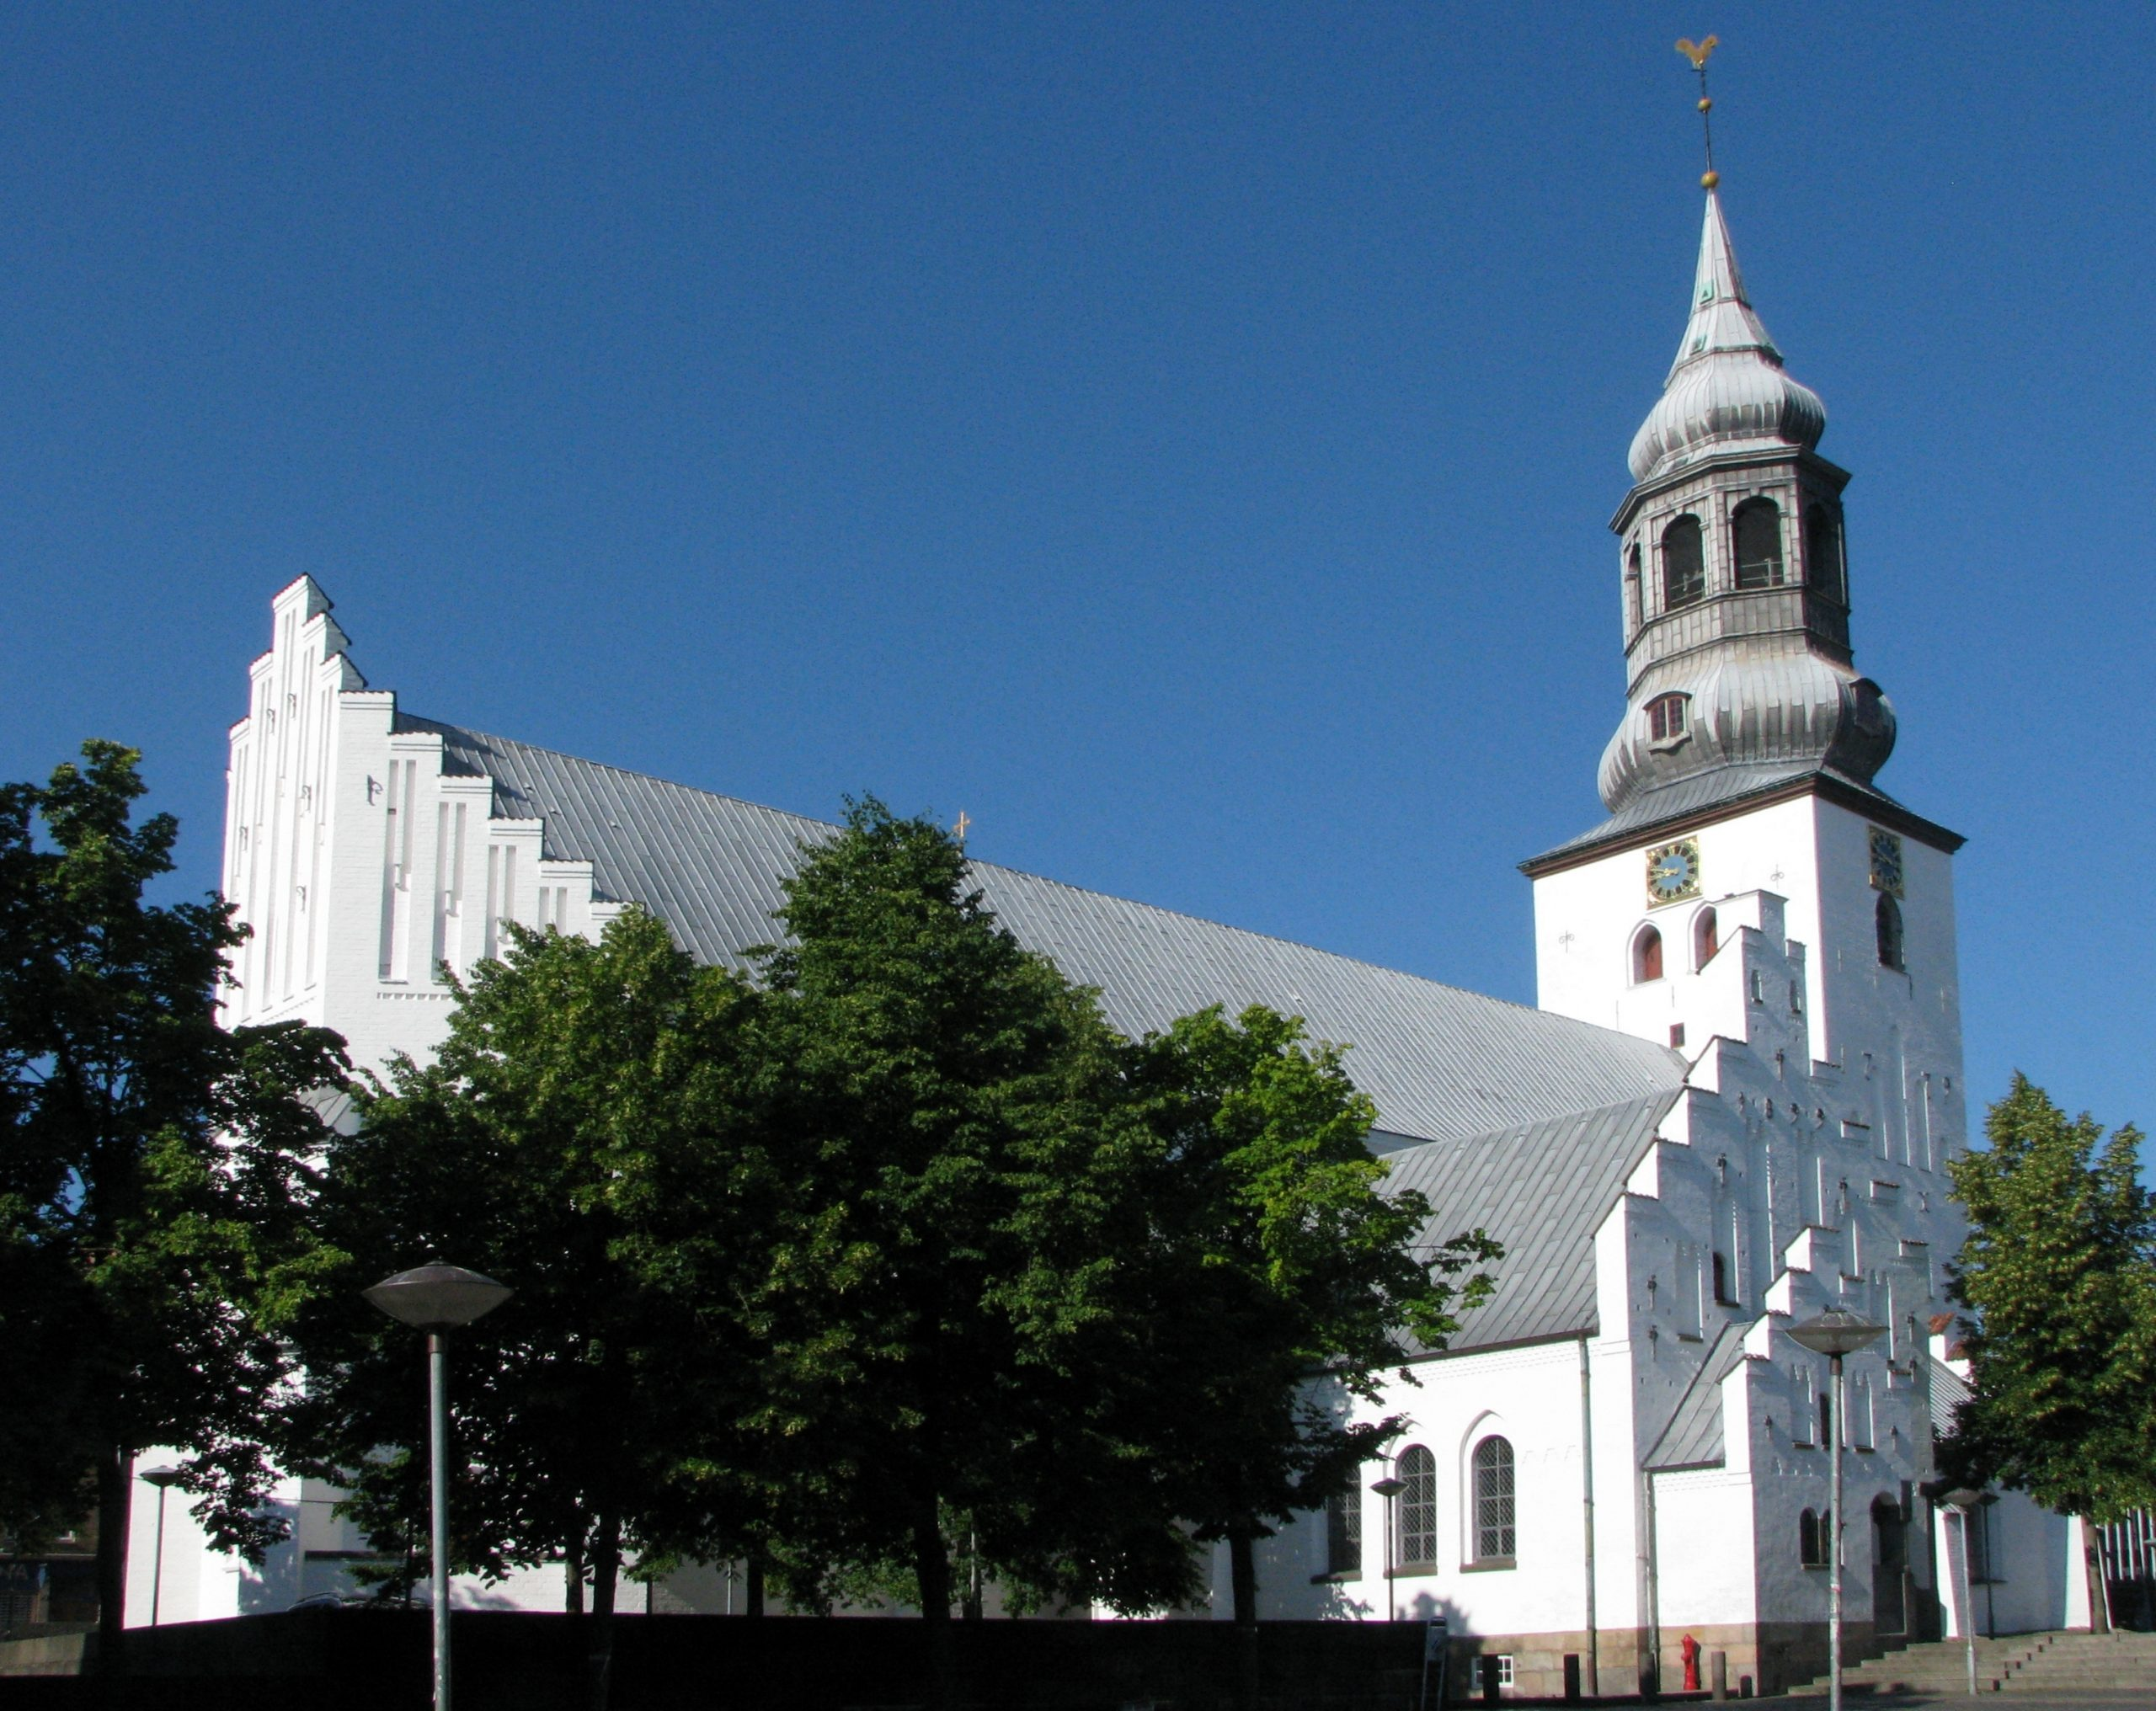 Budolfi Cathedral - Places to See in Aalborg City, Denmark